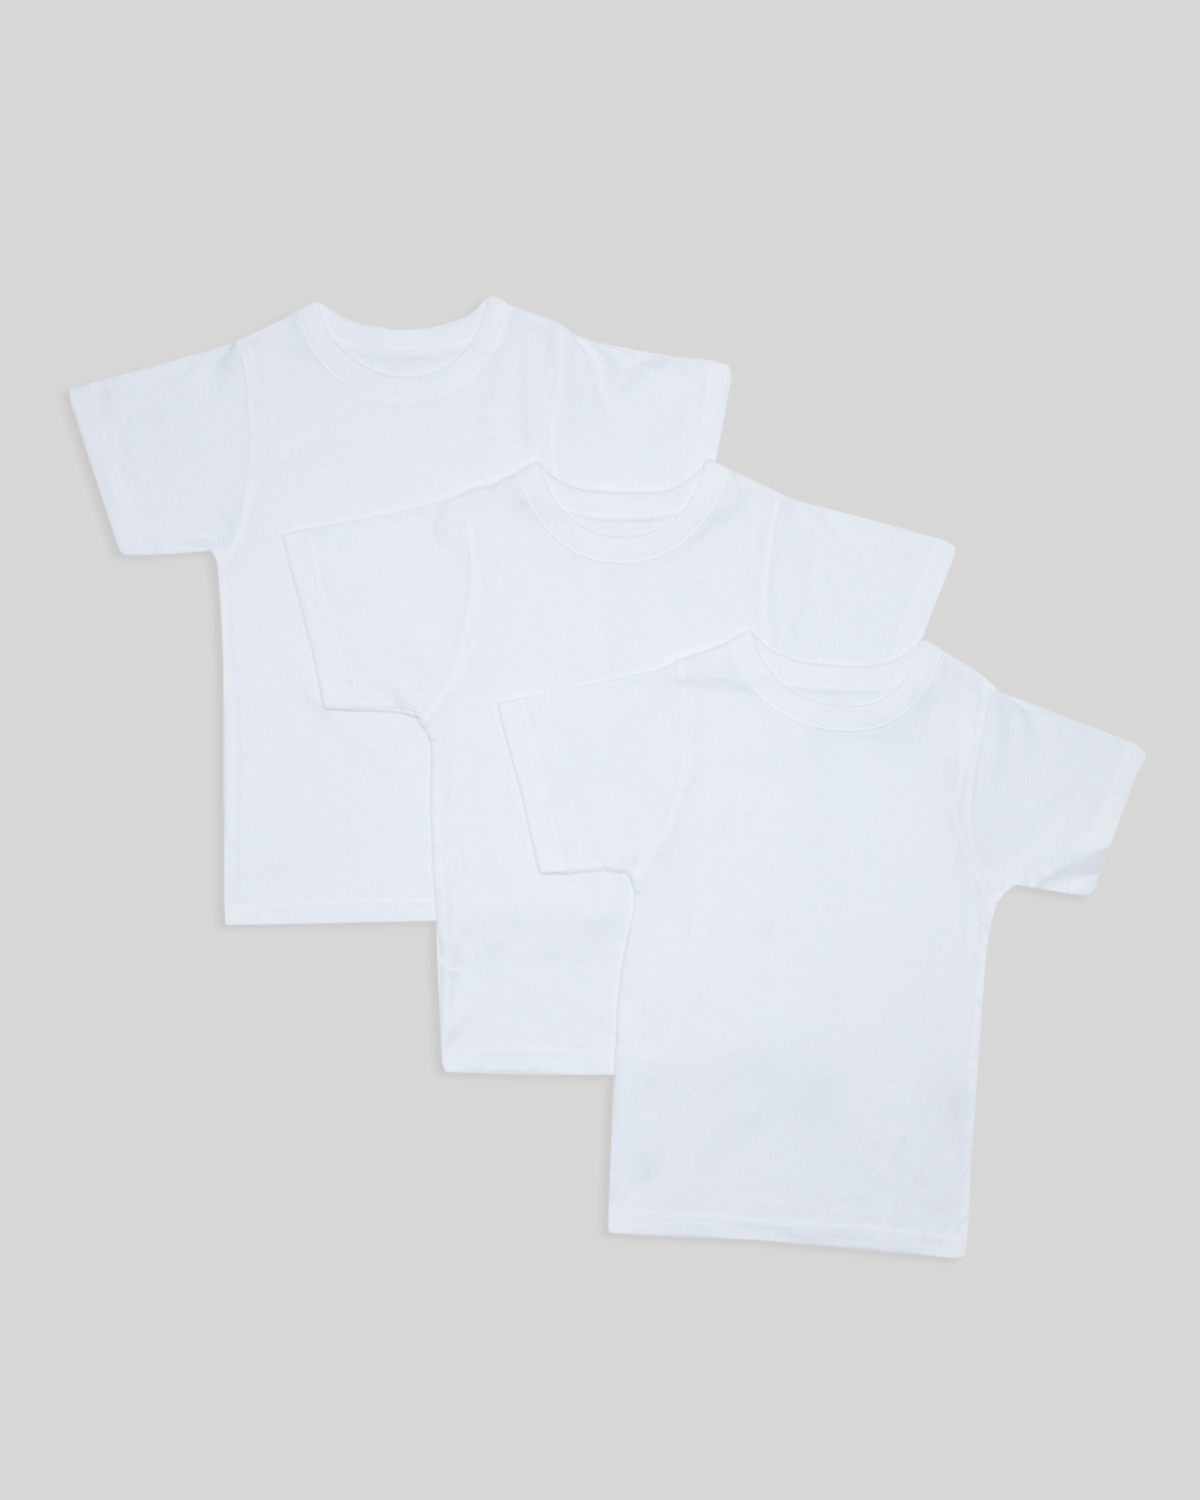 South Island Boys 3 pack  short T shirt set 6-7 years